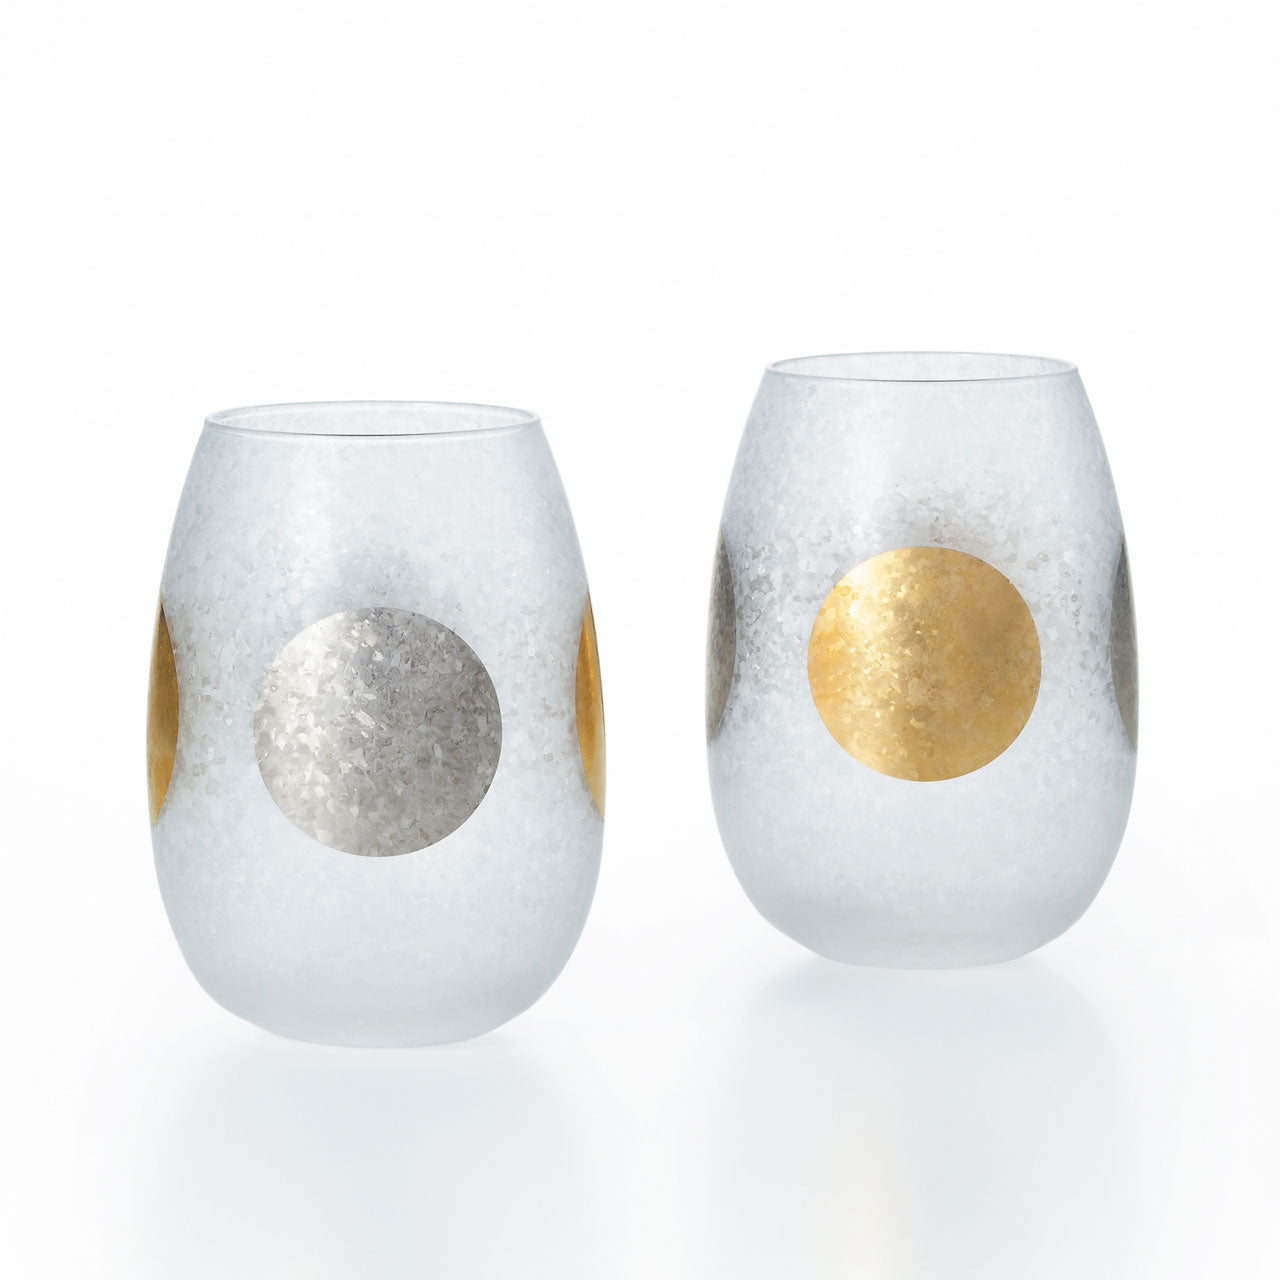 [New] Ishizuka Glass Sun-Moon Tumbler Pair 10.6 fl oz